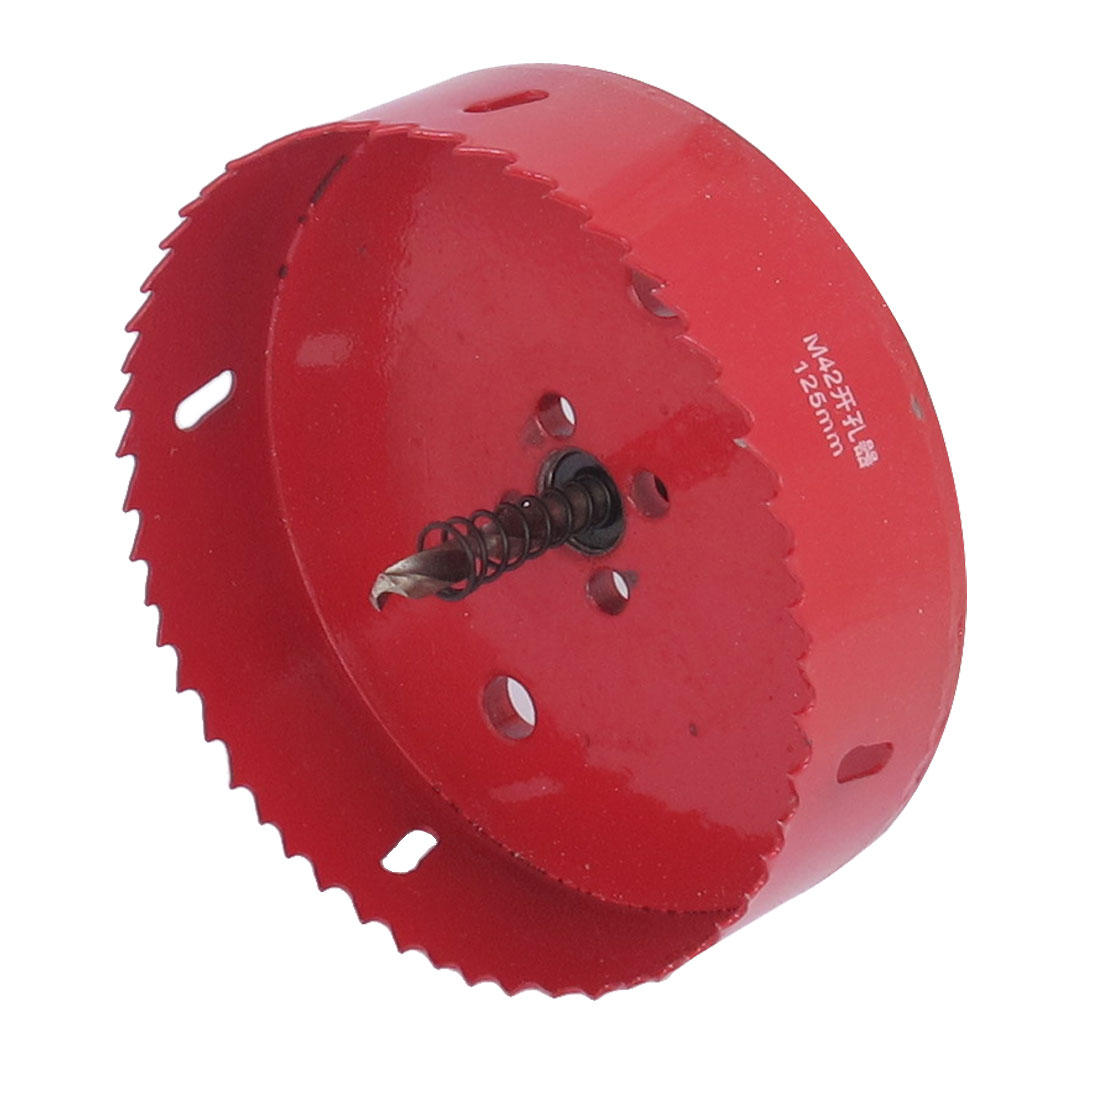 10mm Shank 125mm Cutting Dia Toothed Bi-Metal Hole Saw Cutter Drill Bit Tool Red